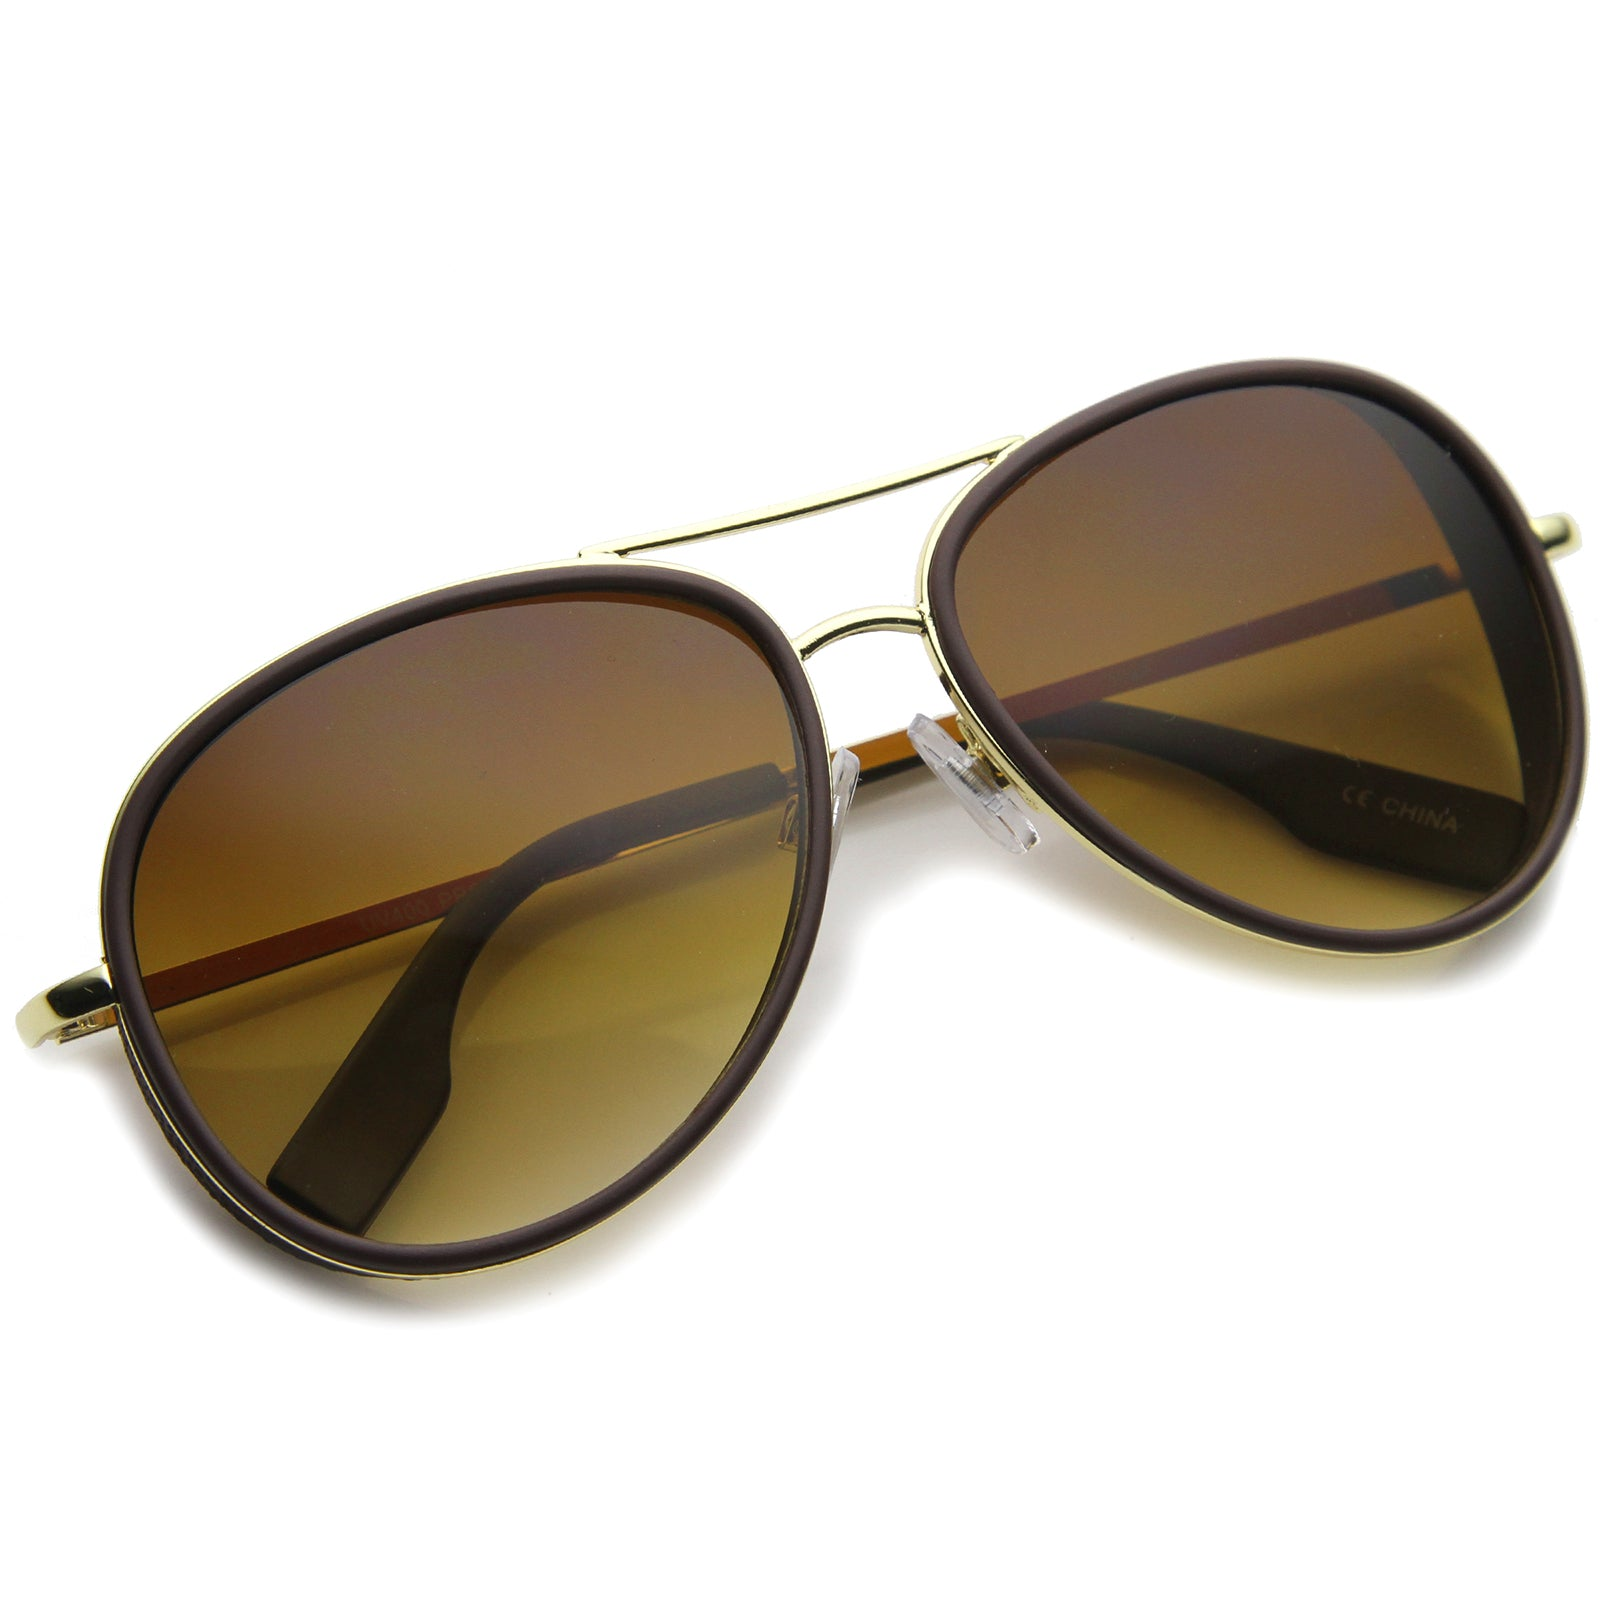 Womens Aviator Sunglasses With UV400 Protected Gradient Lens - sunglass.la - 4